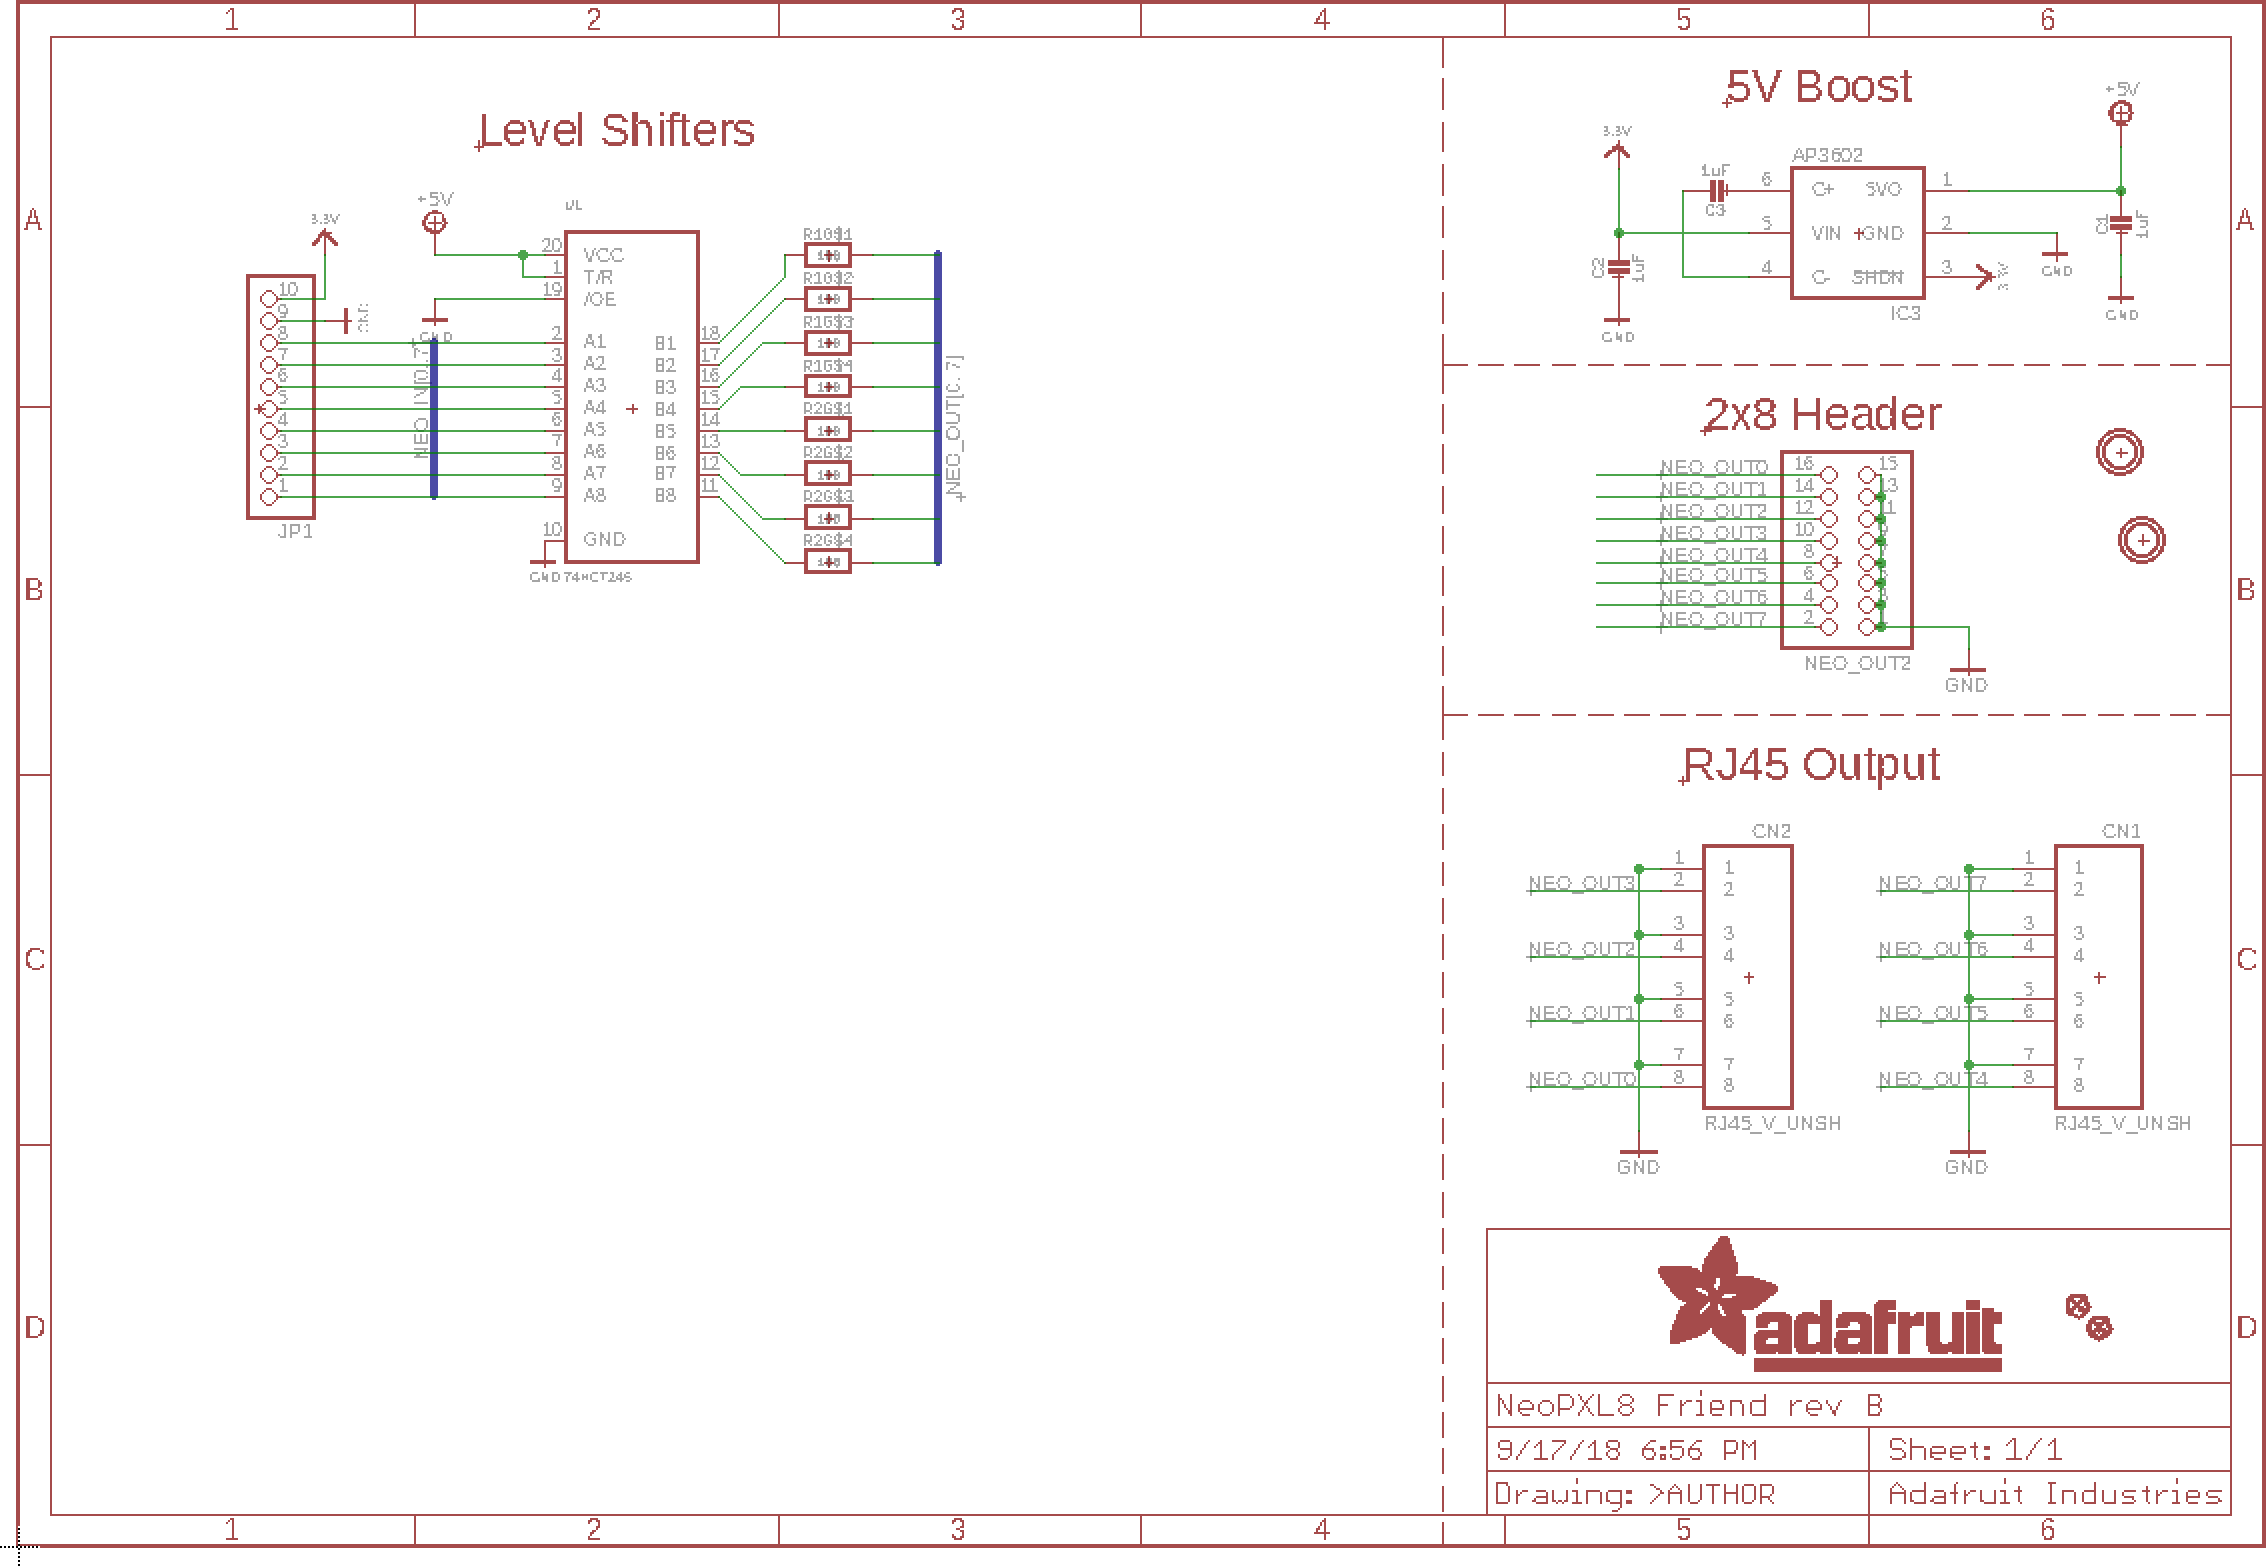 leds_NeoPXL8-Friend-schematic.png